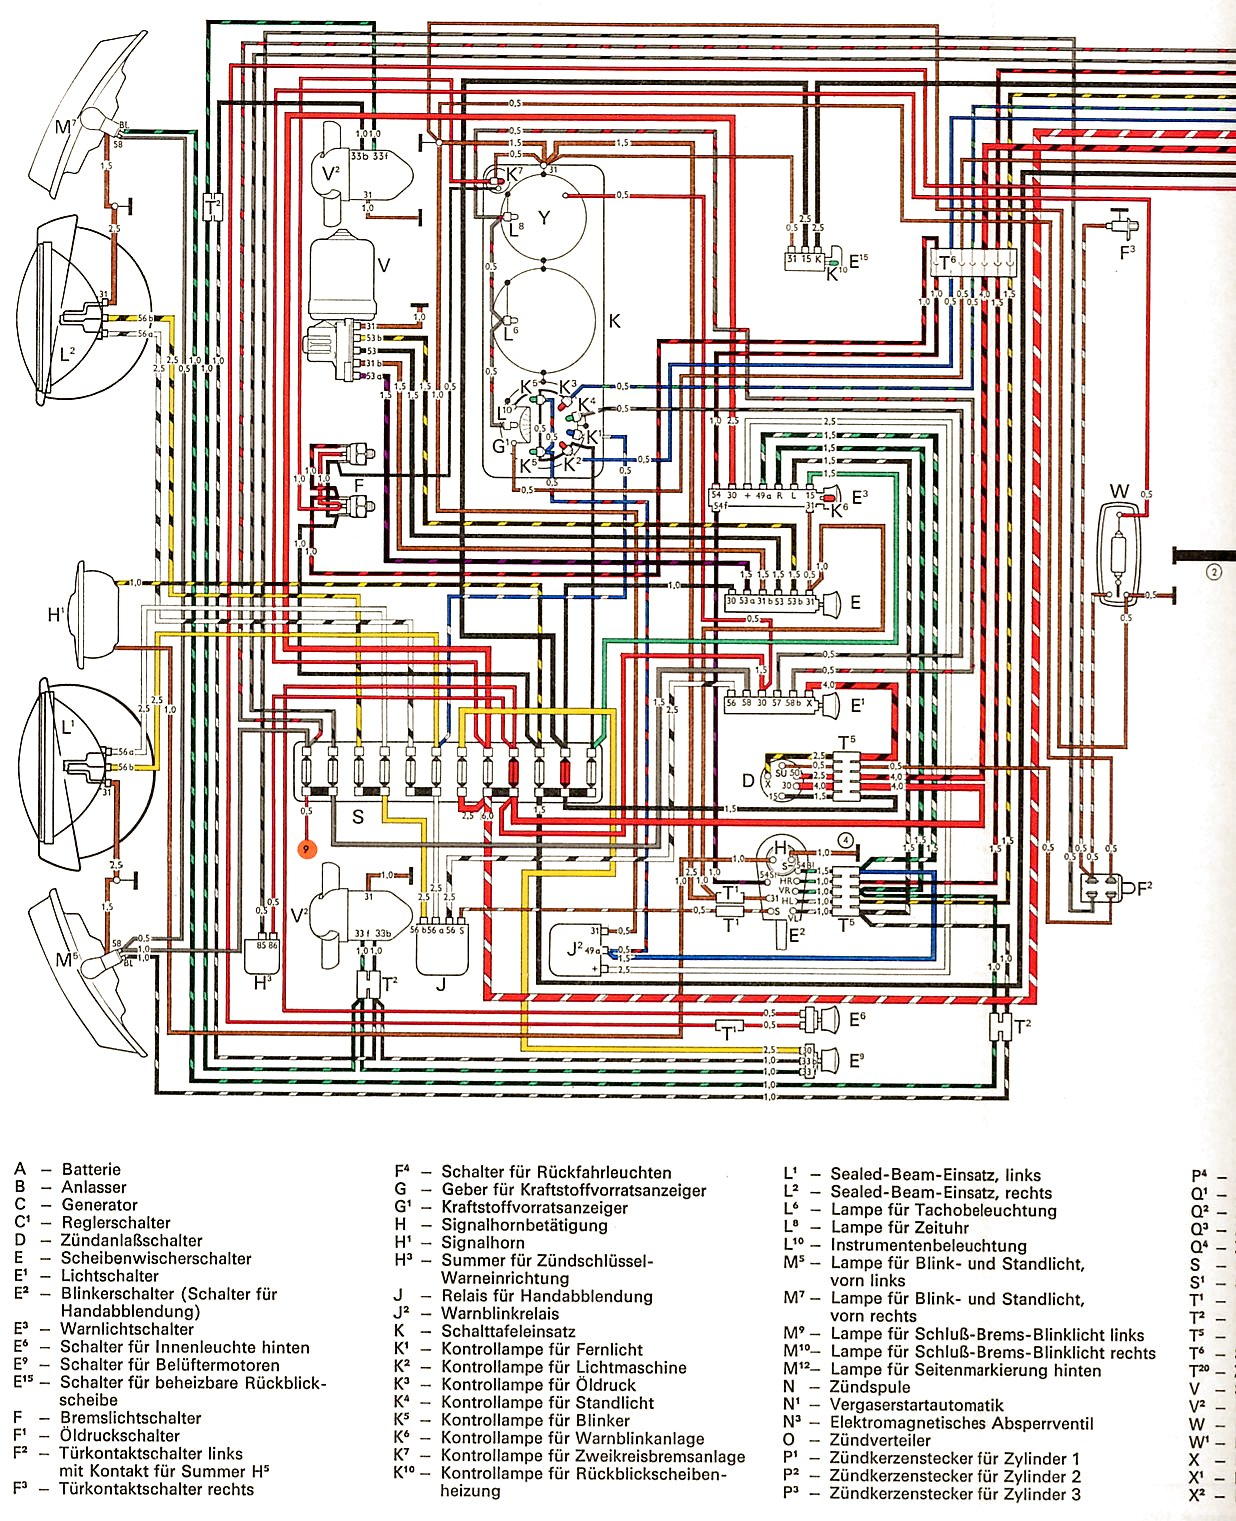 Vintagebus vw bus and other wiring diagrams com vw bus and other wiring diagrams publicscrutiny Choice Image